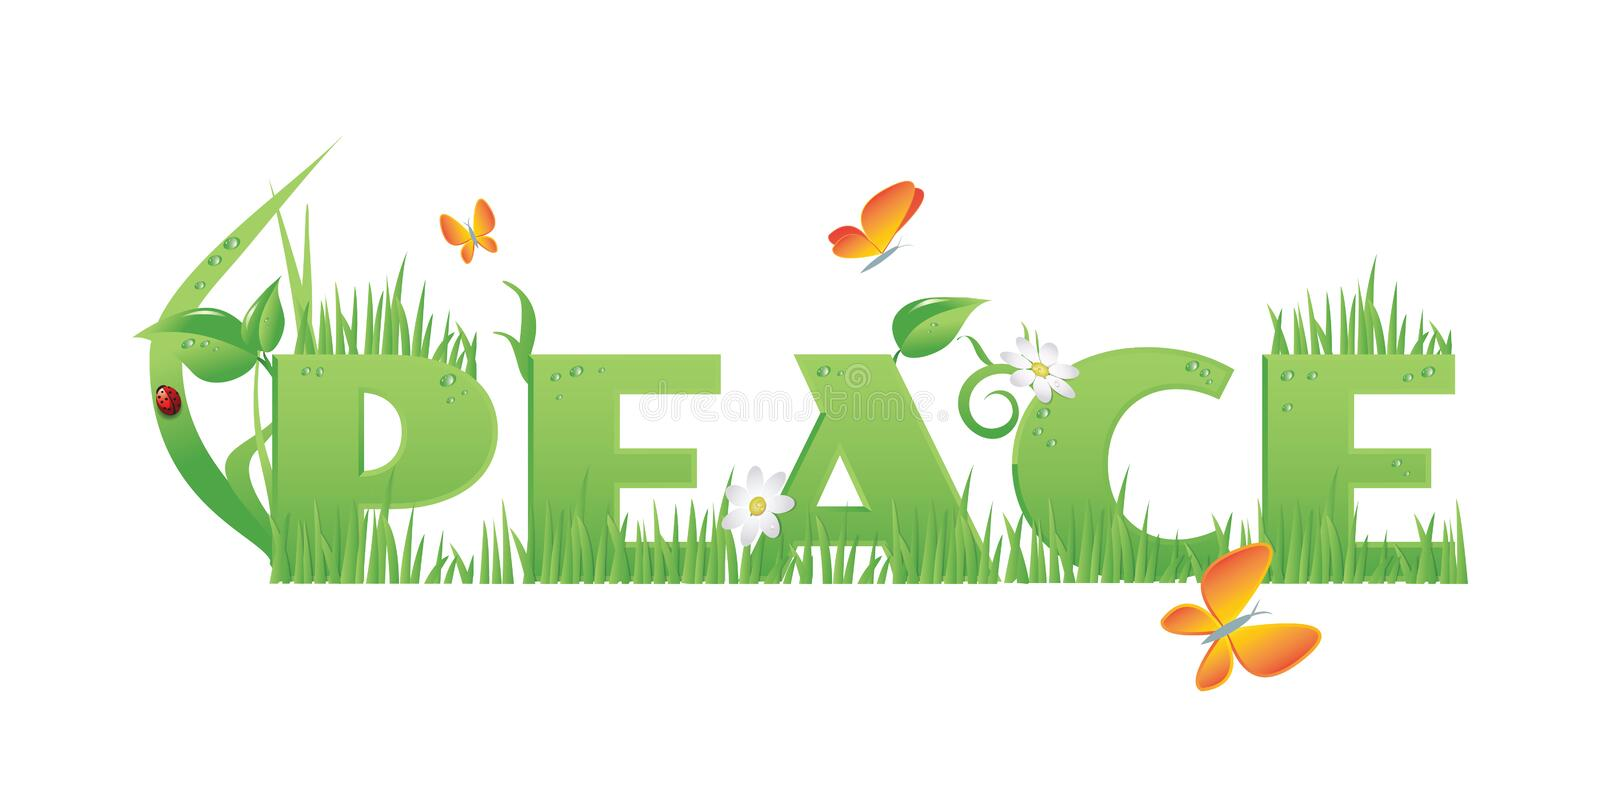 Download Peace stock vector. Image of education, illustration - 31930678